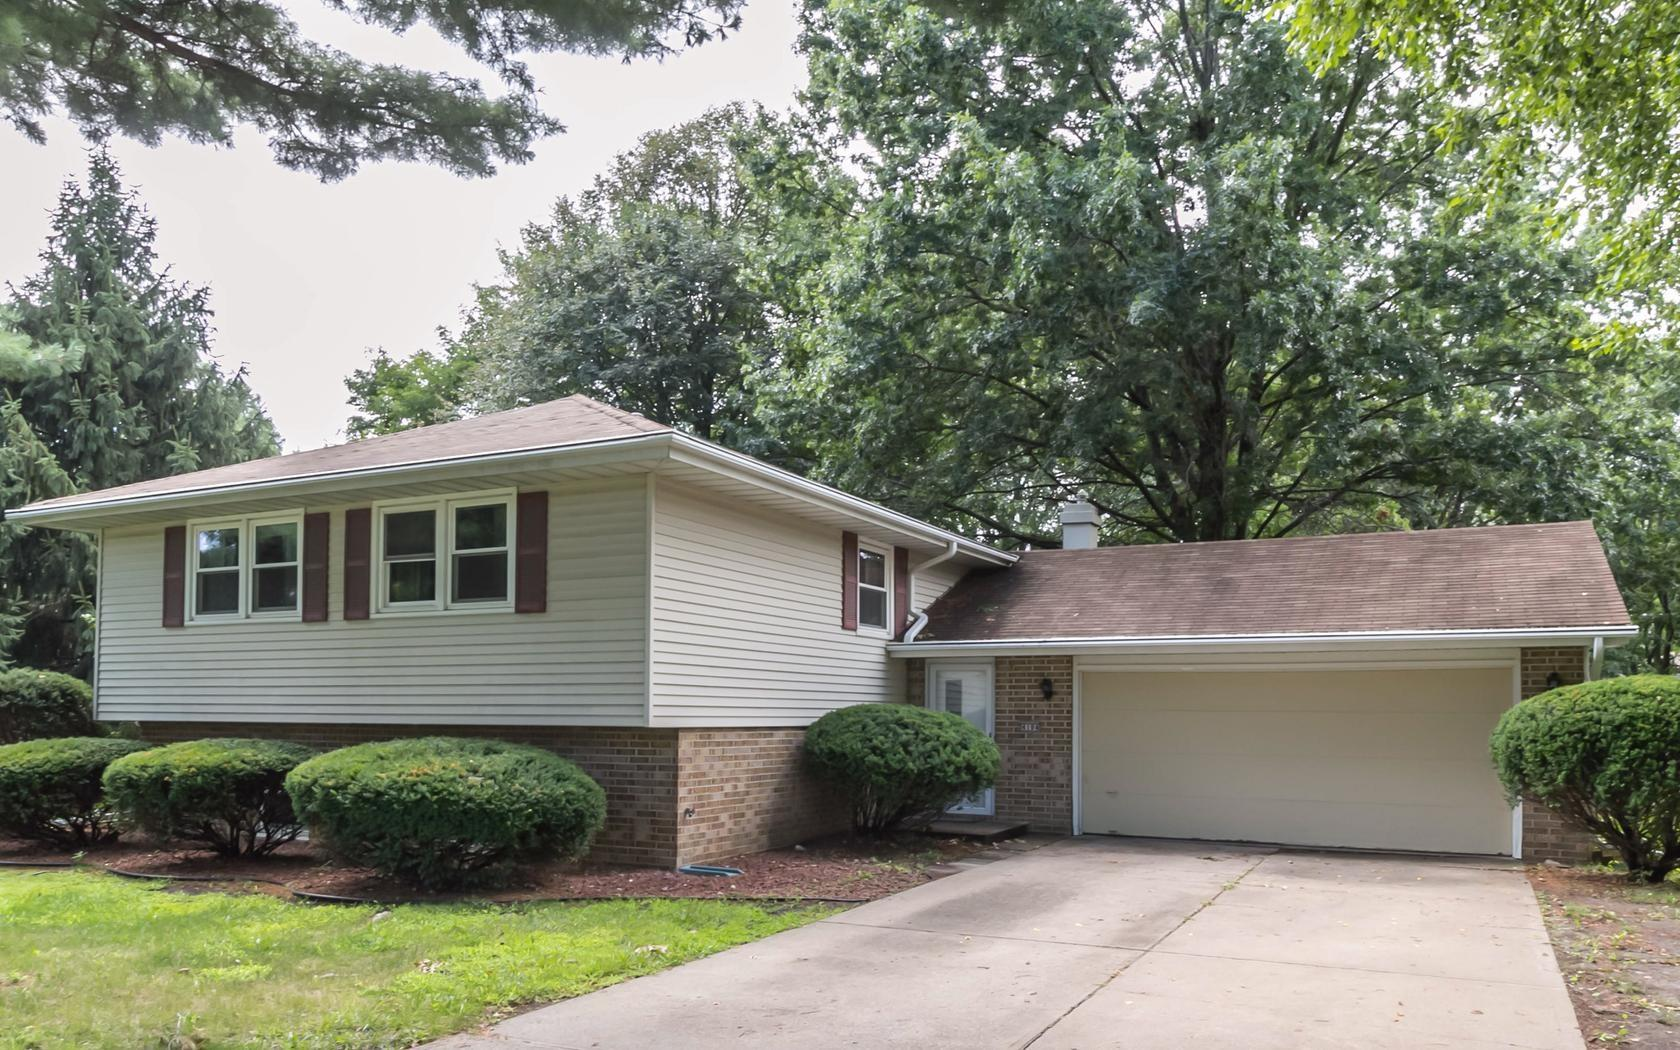 4104 boulder dr for rent west des moines ia trulia